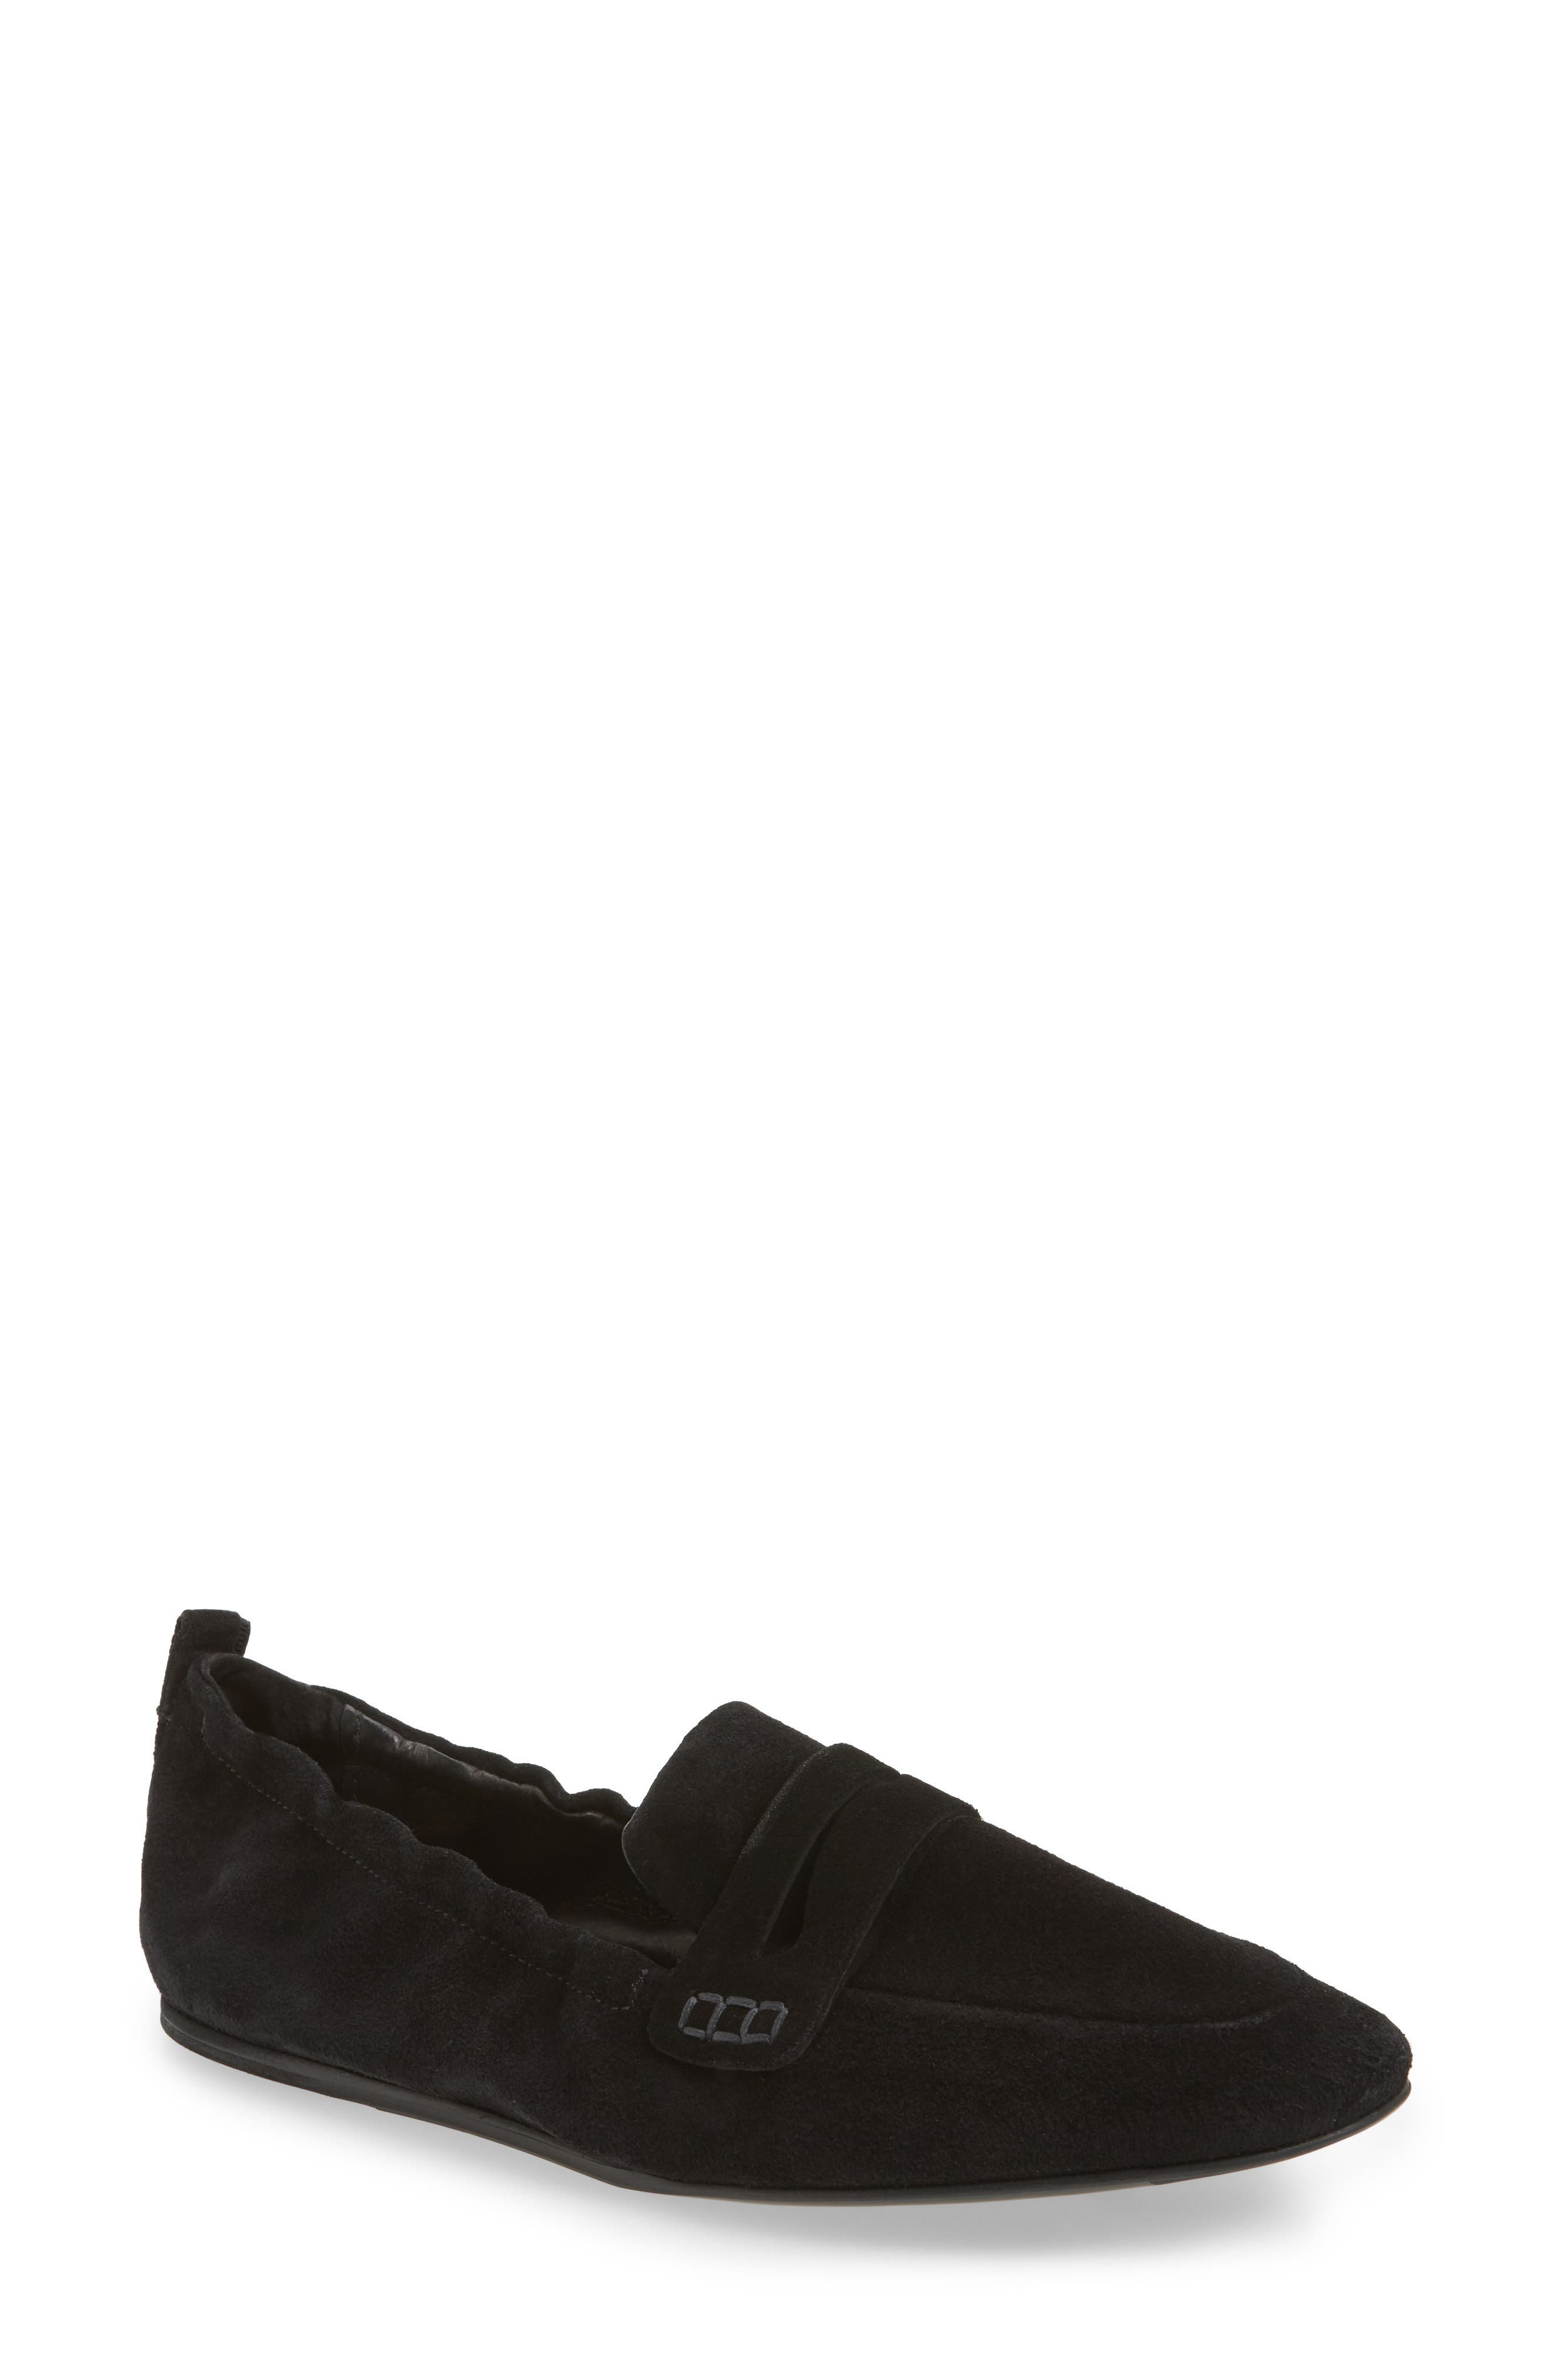 Milly Elastic Loafer Flat,                             Main thumbnail 1, color,                             Black Suede